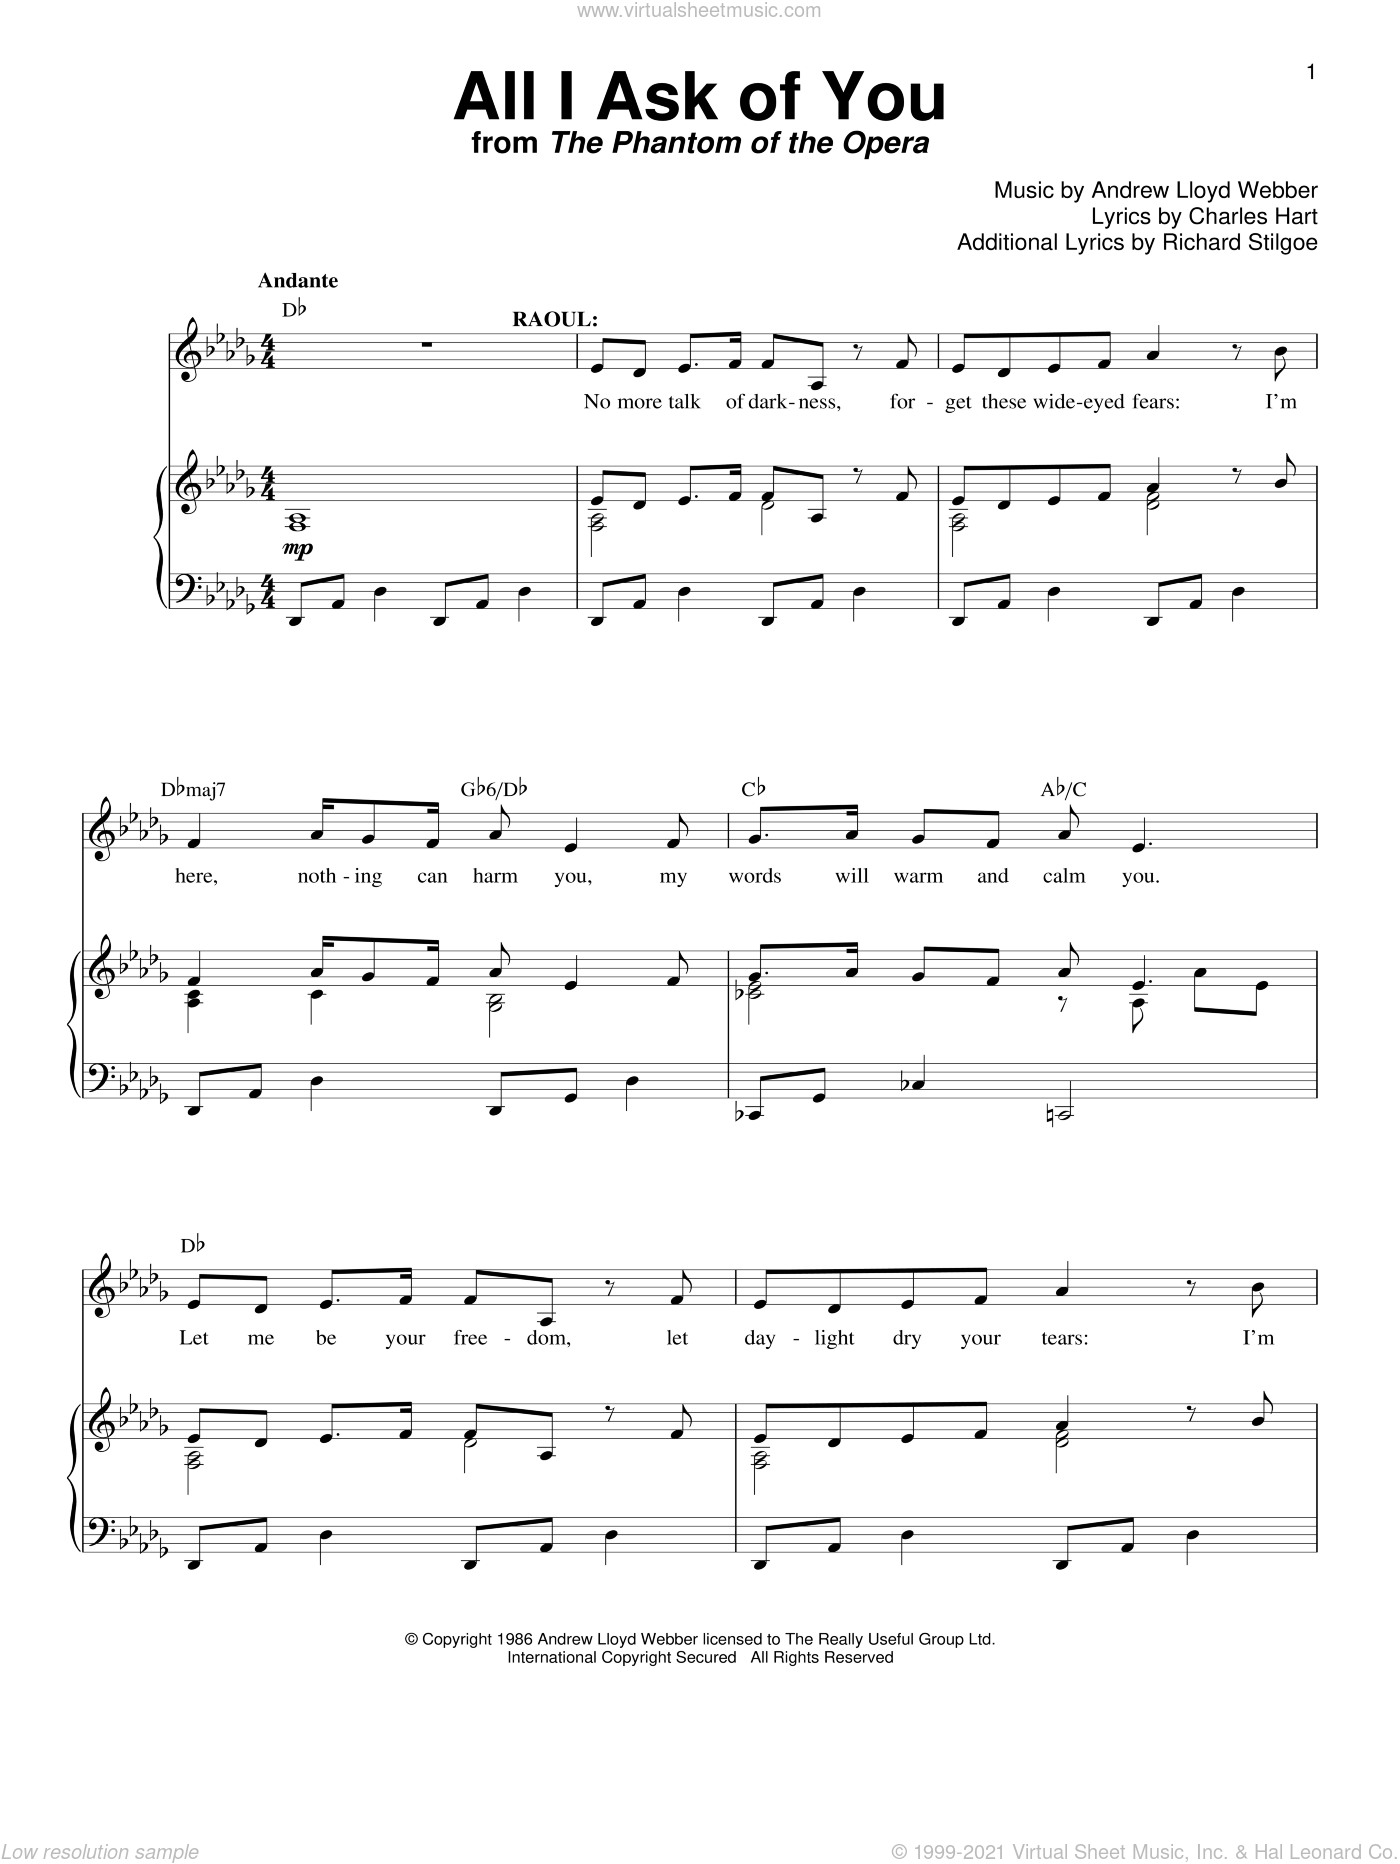 All I Ask Of You sheet music for voice and piano by Richard Stilgoe